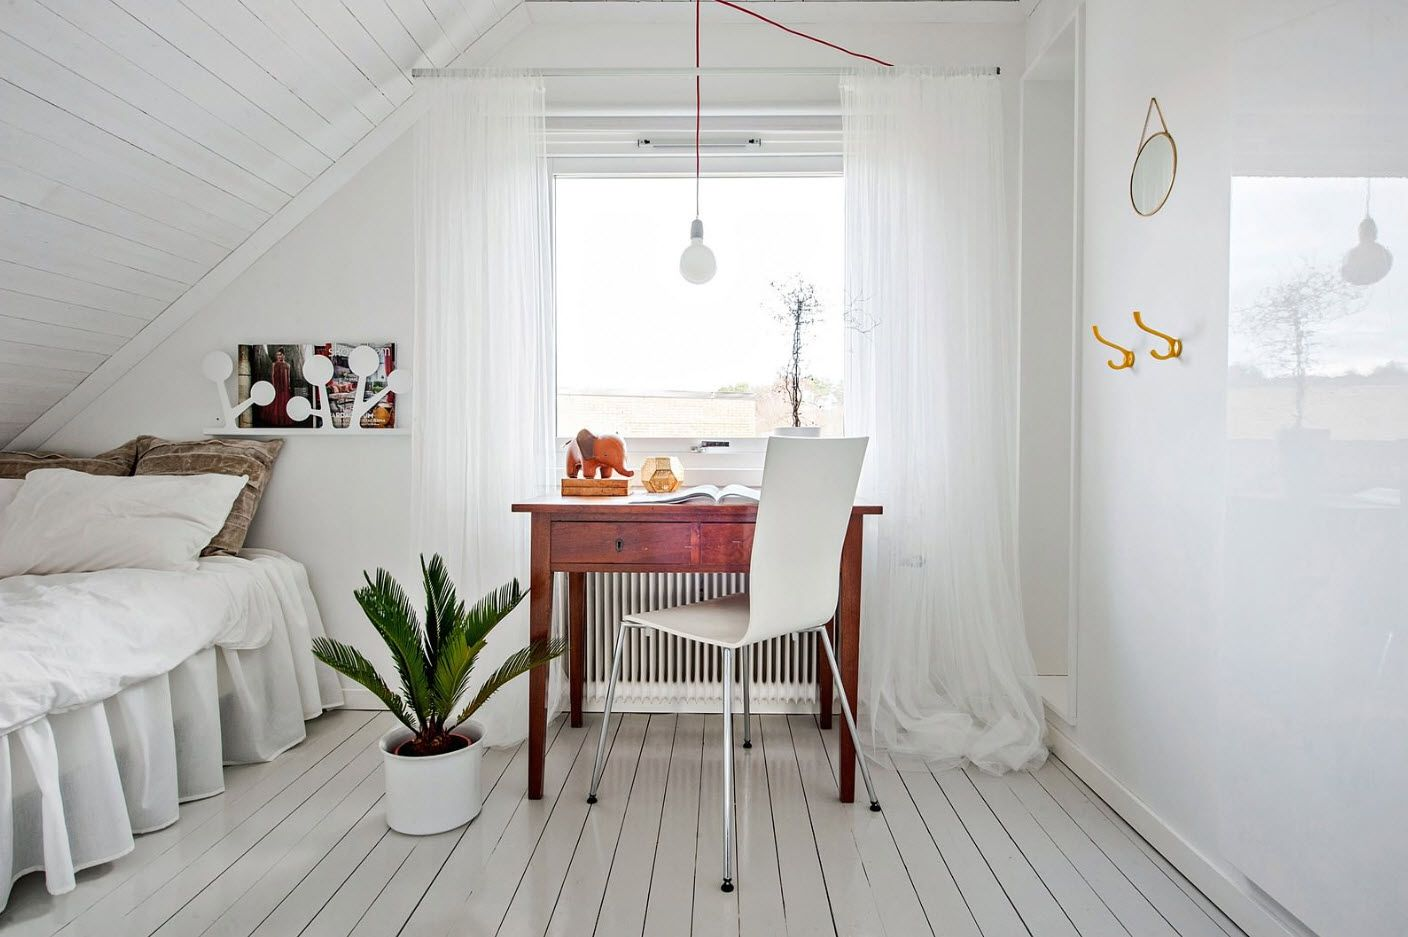 Modern Bedroom Interior Decoration & Design Ideas 2017. Typical Scandinavian style example in small bedroom